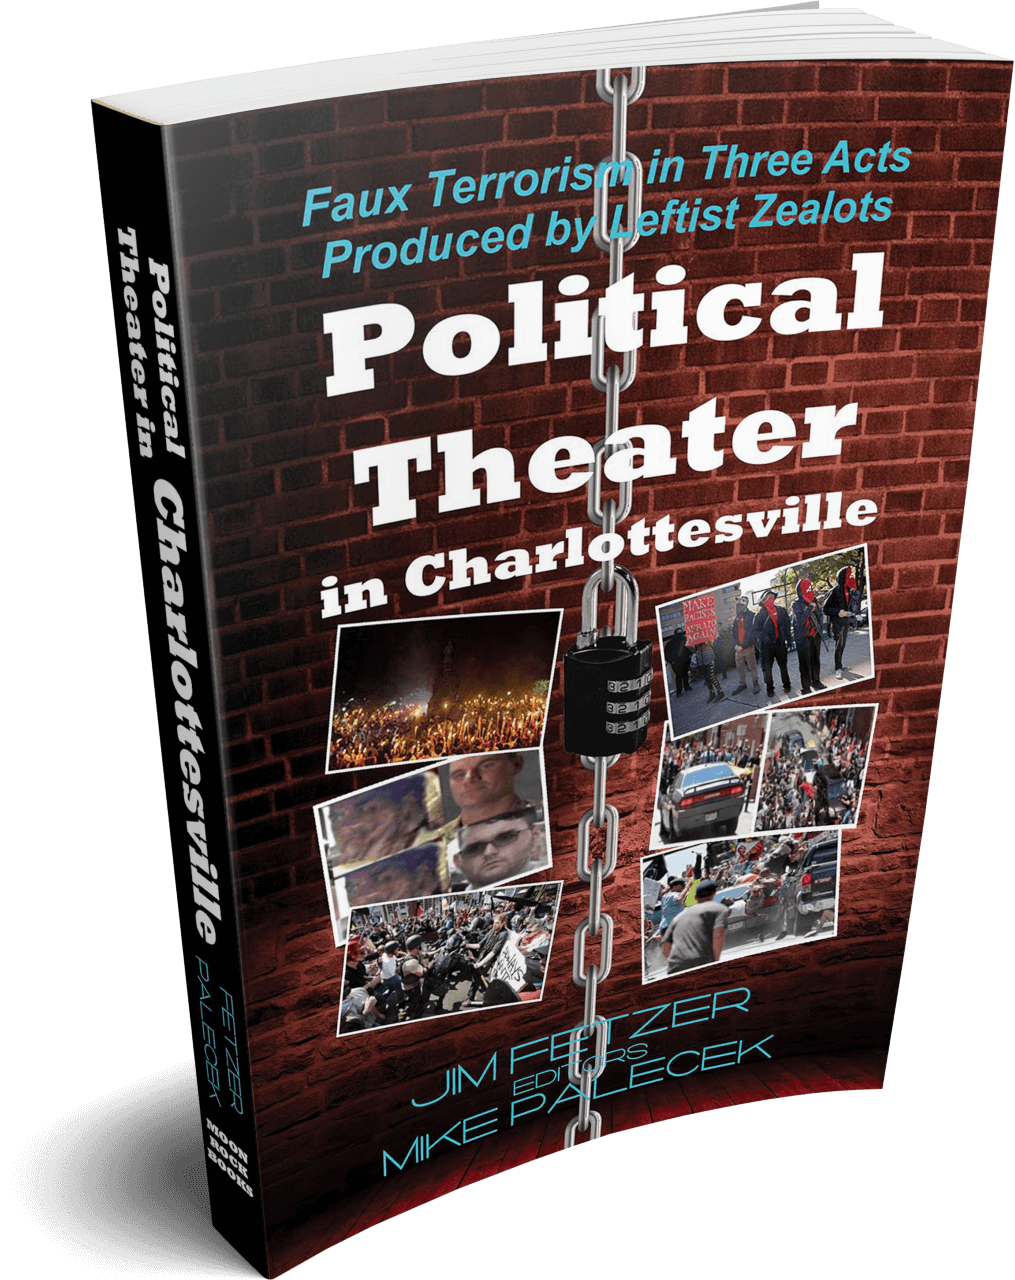 Political Theater in Charlottesville